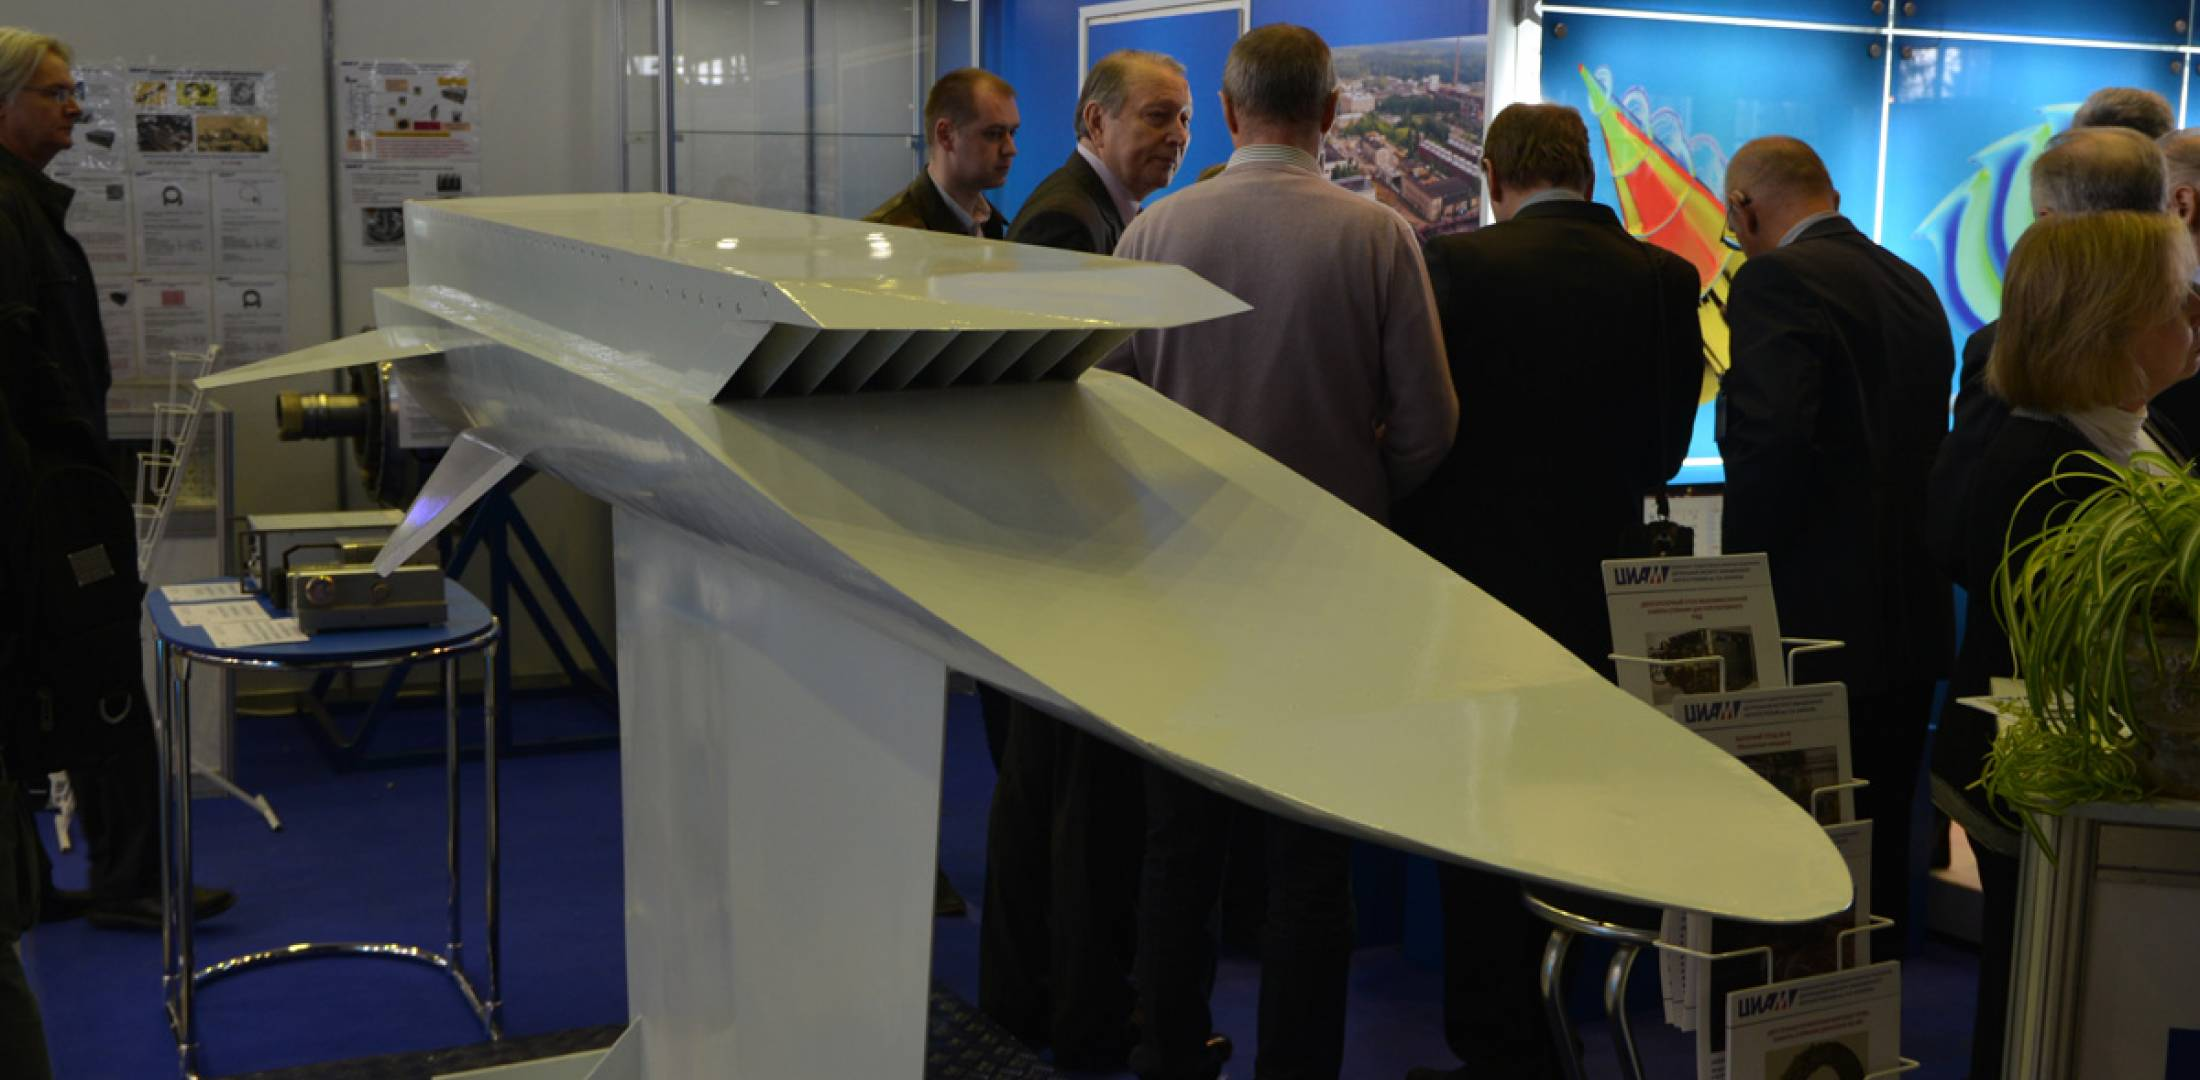 hypersonic missile model